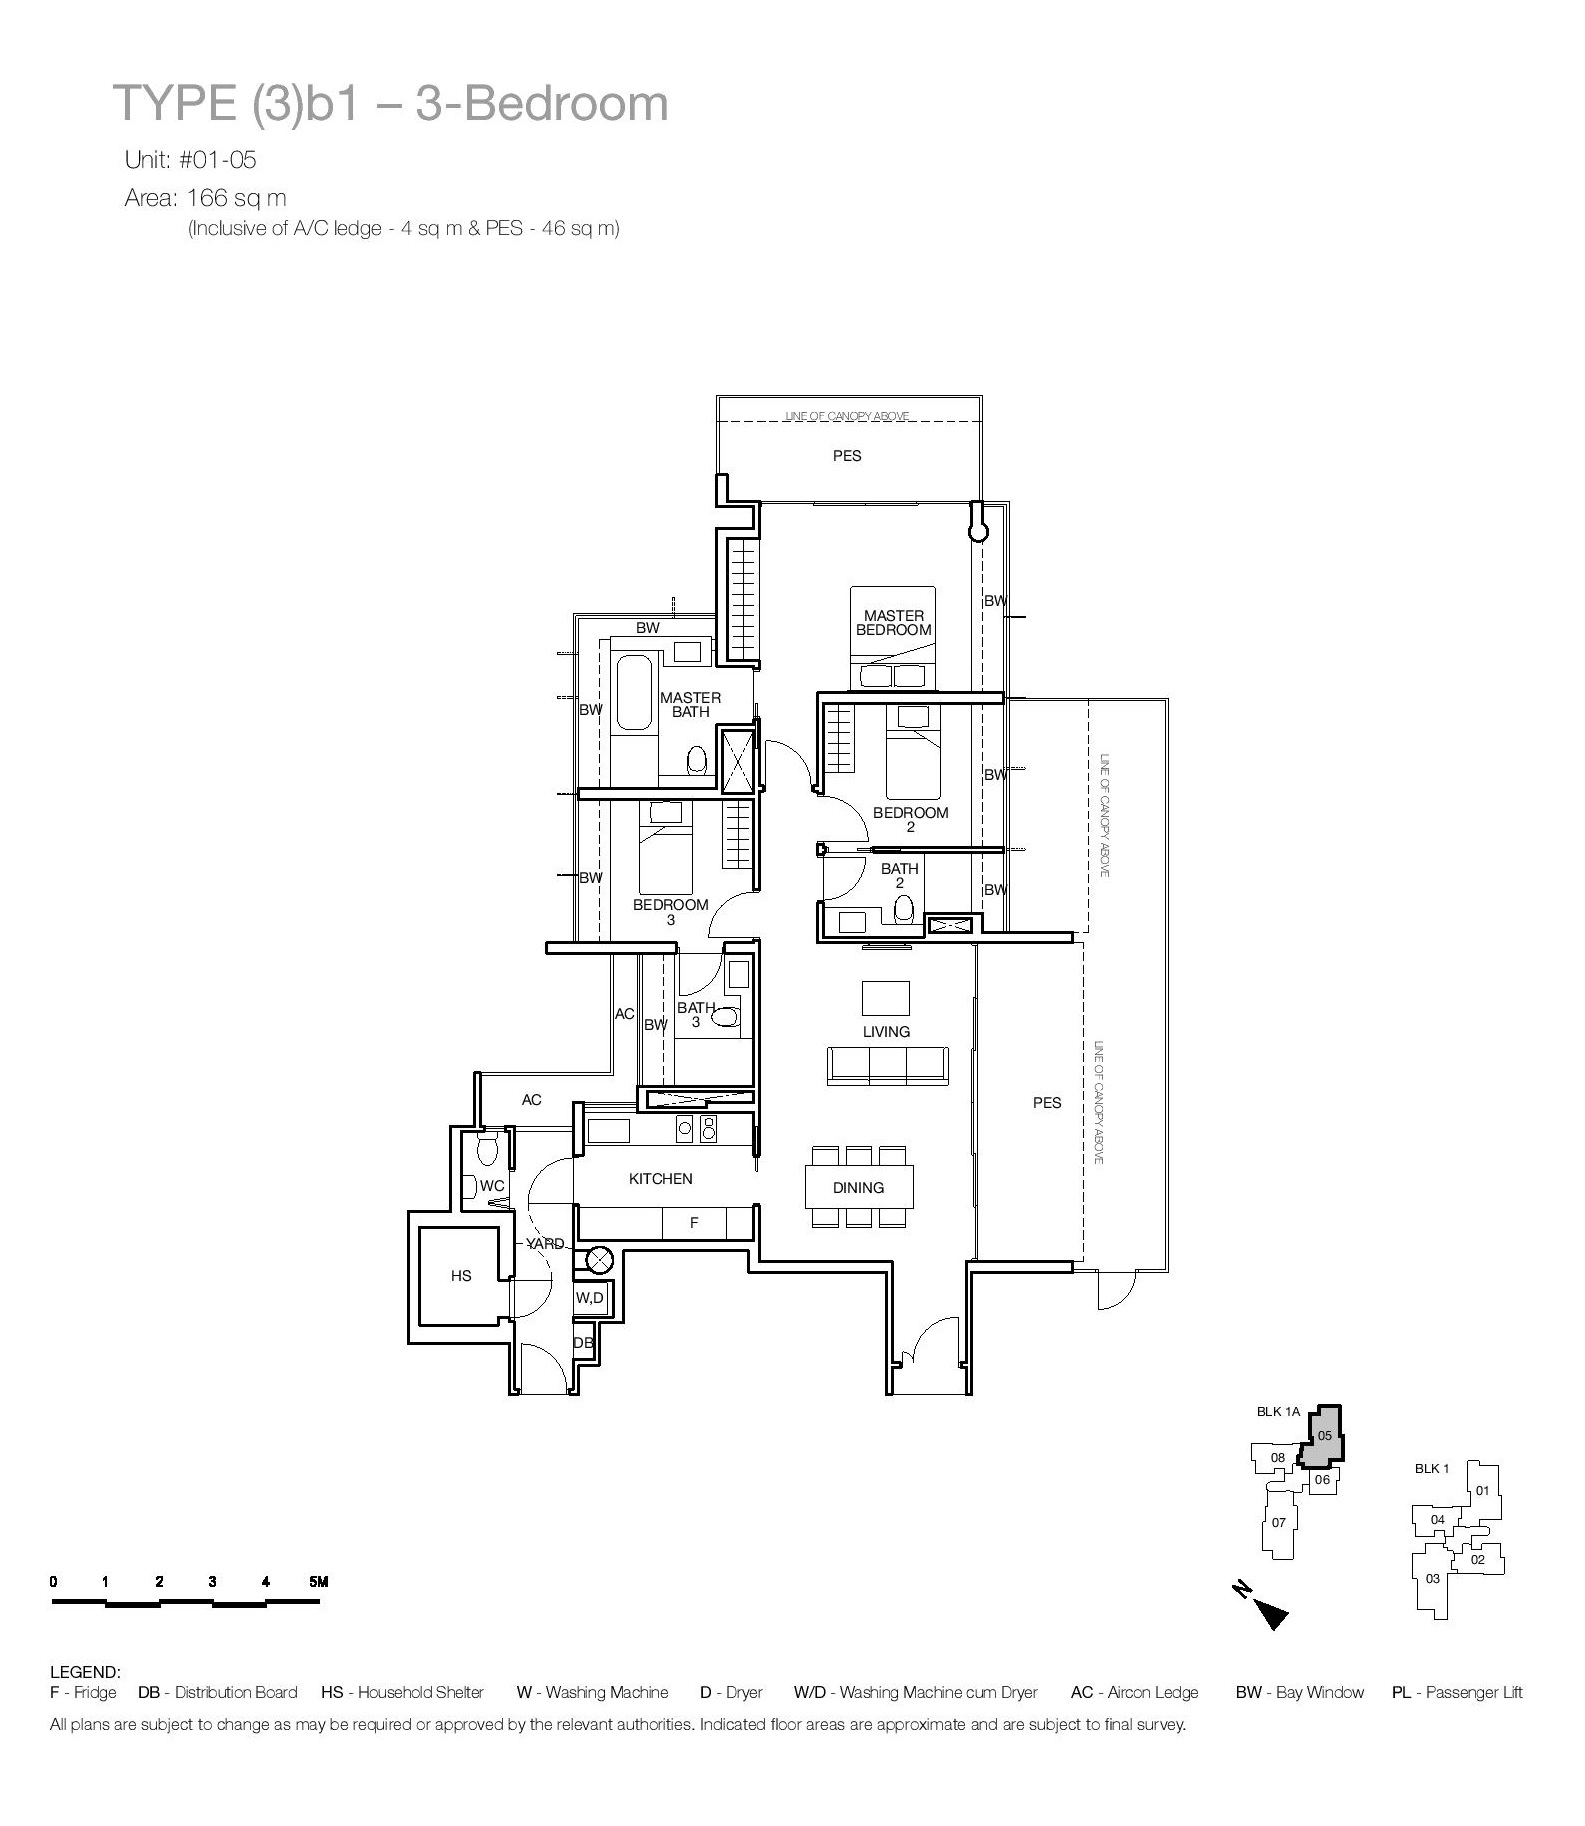 One Balmoral 3 Bedroom Floor Type (3)b1 Plans